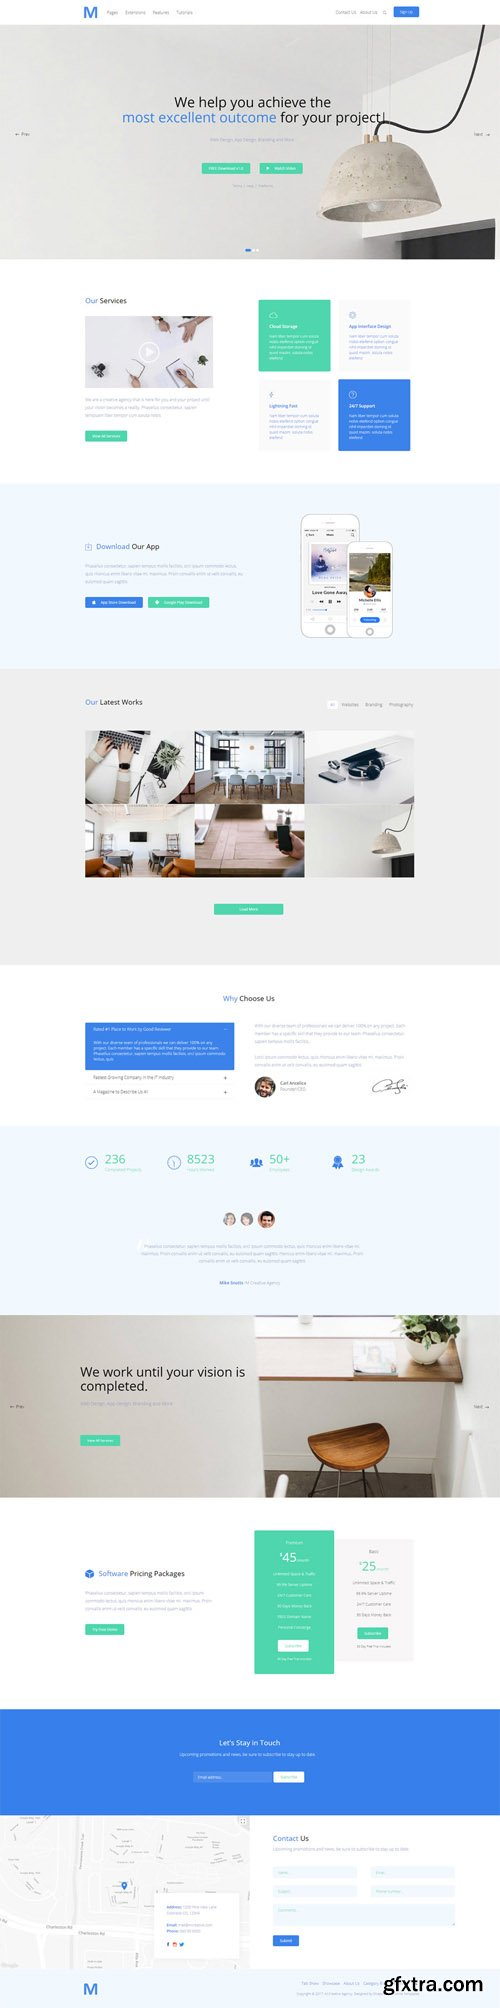 Shape5 - M Creative Agency v1.0.3 - Joomla Template